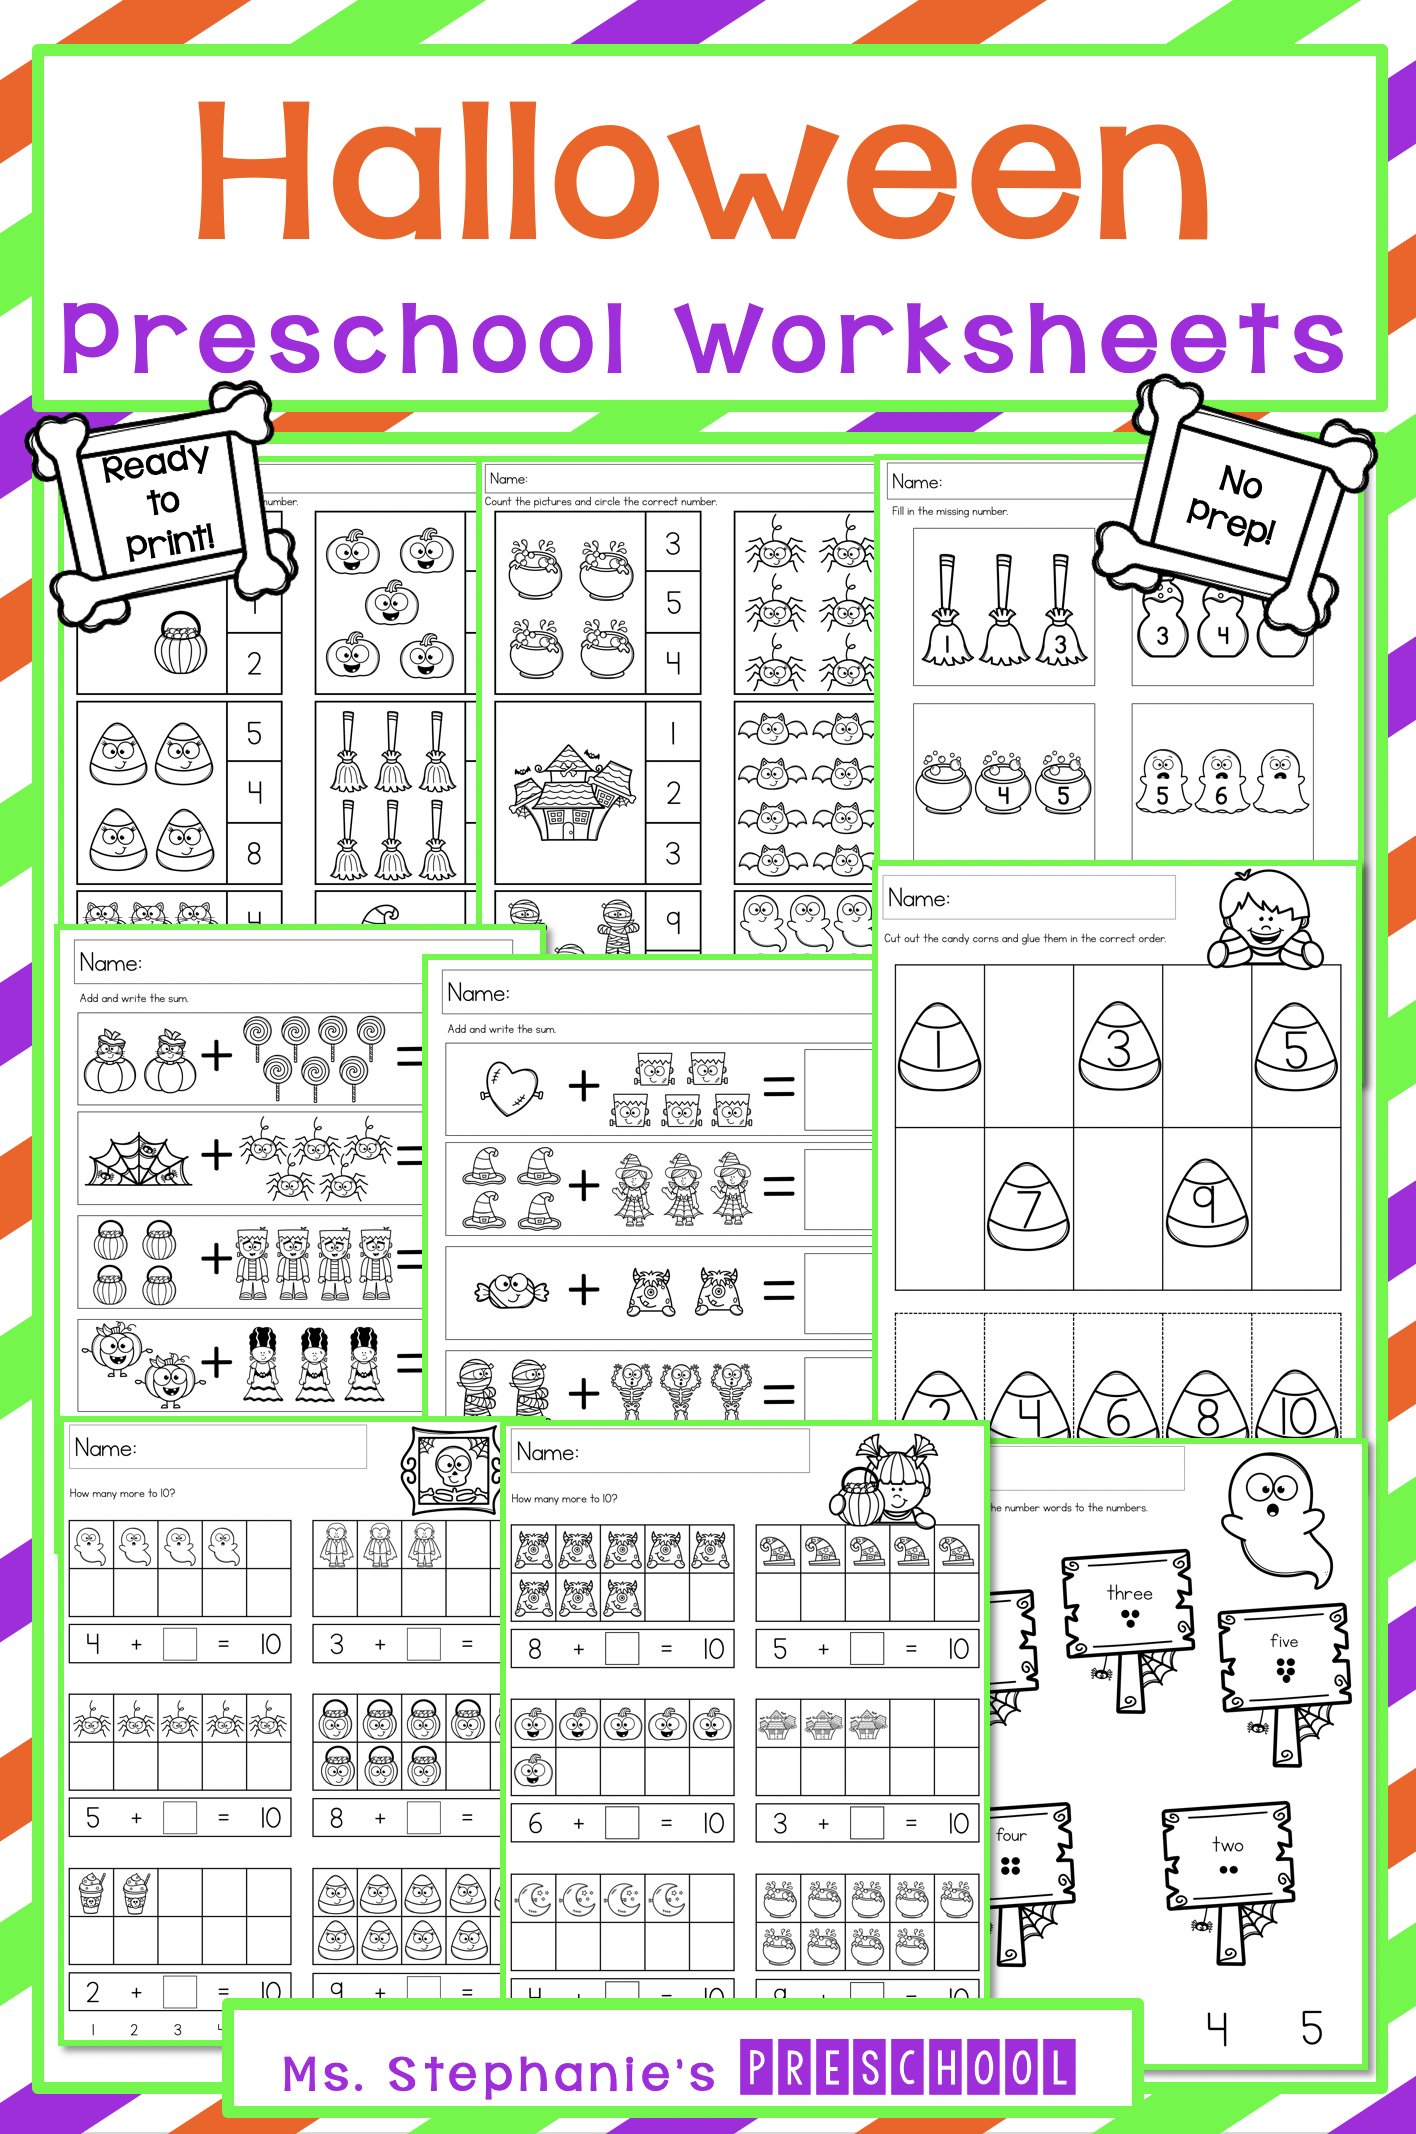 Halloween Preschool Worksheets In